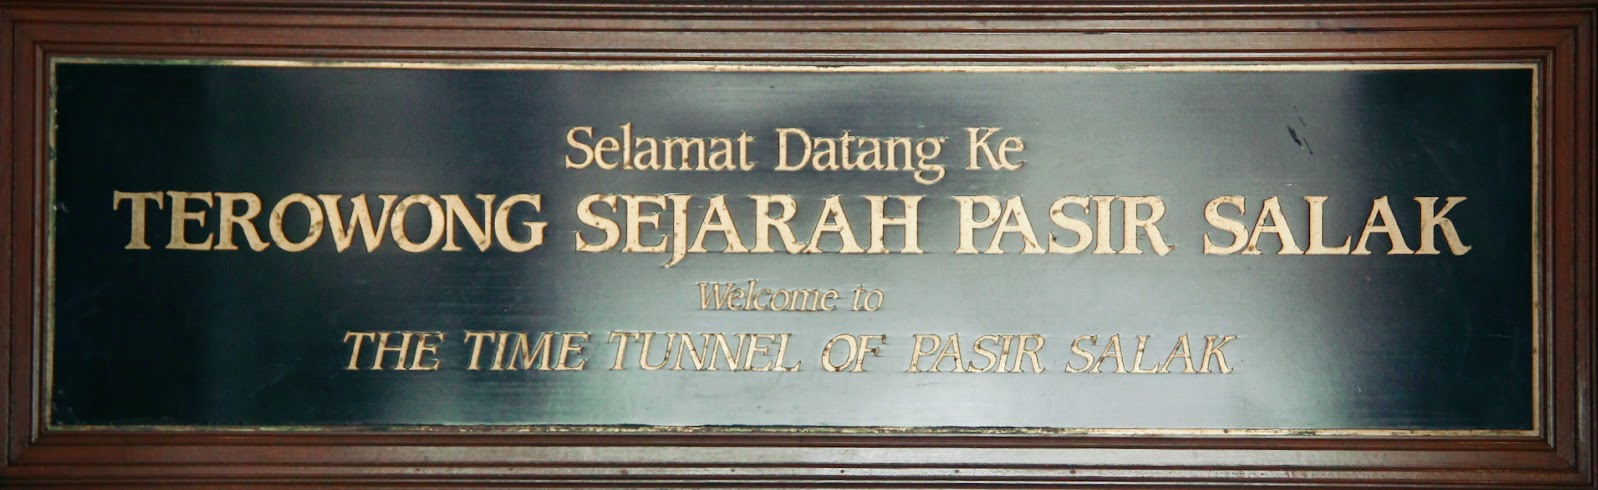 The Time Tunnel of Pasir Salak